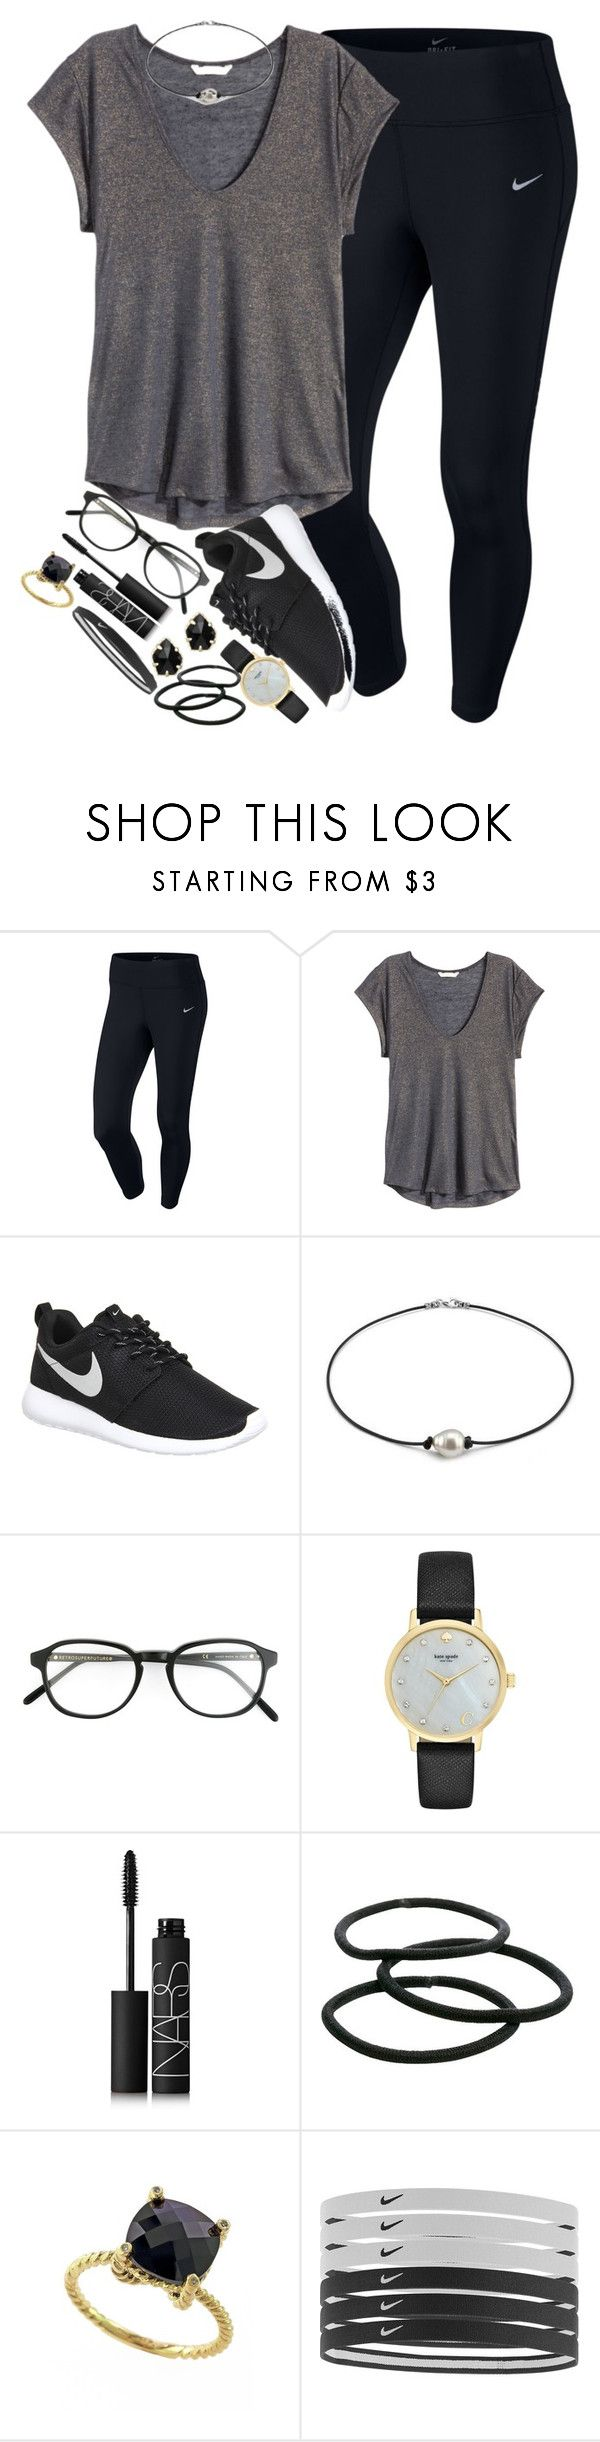 """""""black⚫️⚫️"""" by elizabethannee ❤ liked on Polyvore featuring NIKE, H&M, RetroSuperFuture, Kate Spade, NARS Cosmetics, Goody, Effy Jewelry and Kendra Scott"""